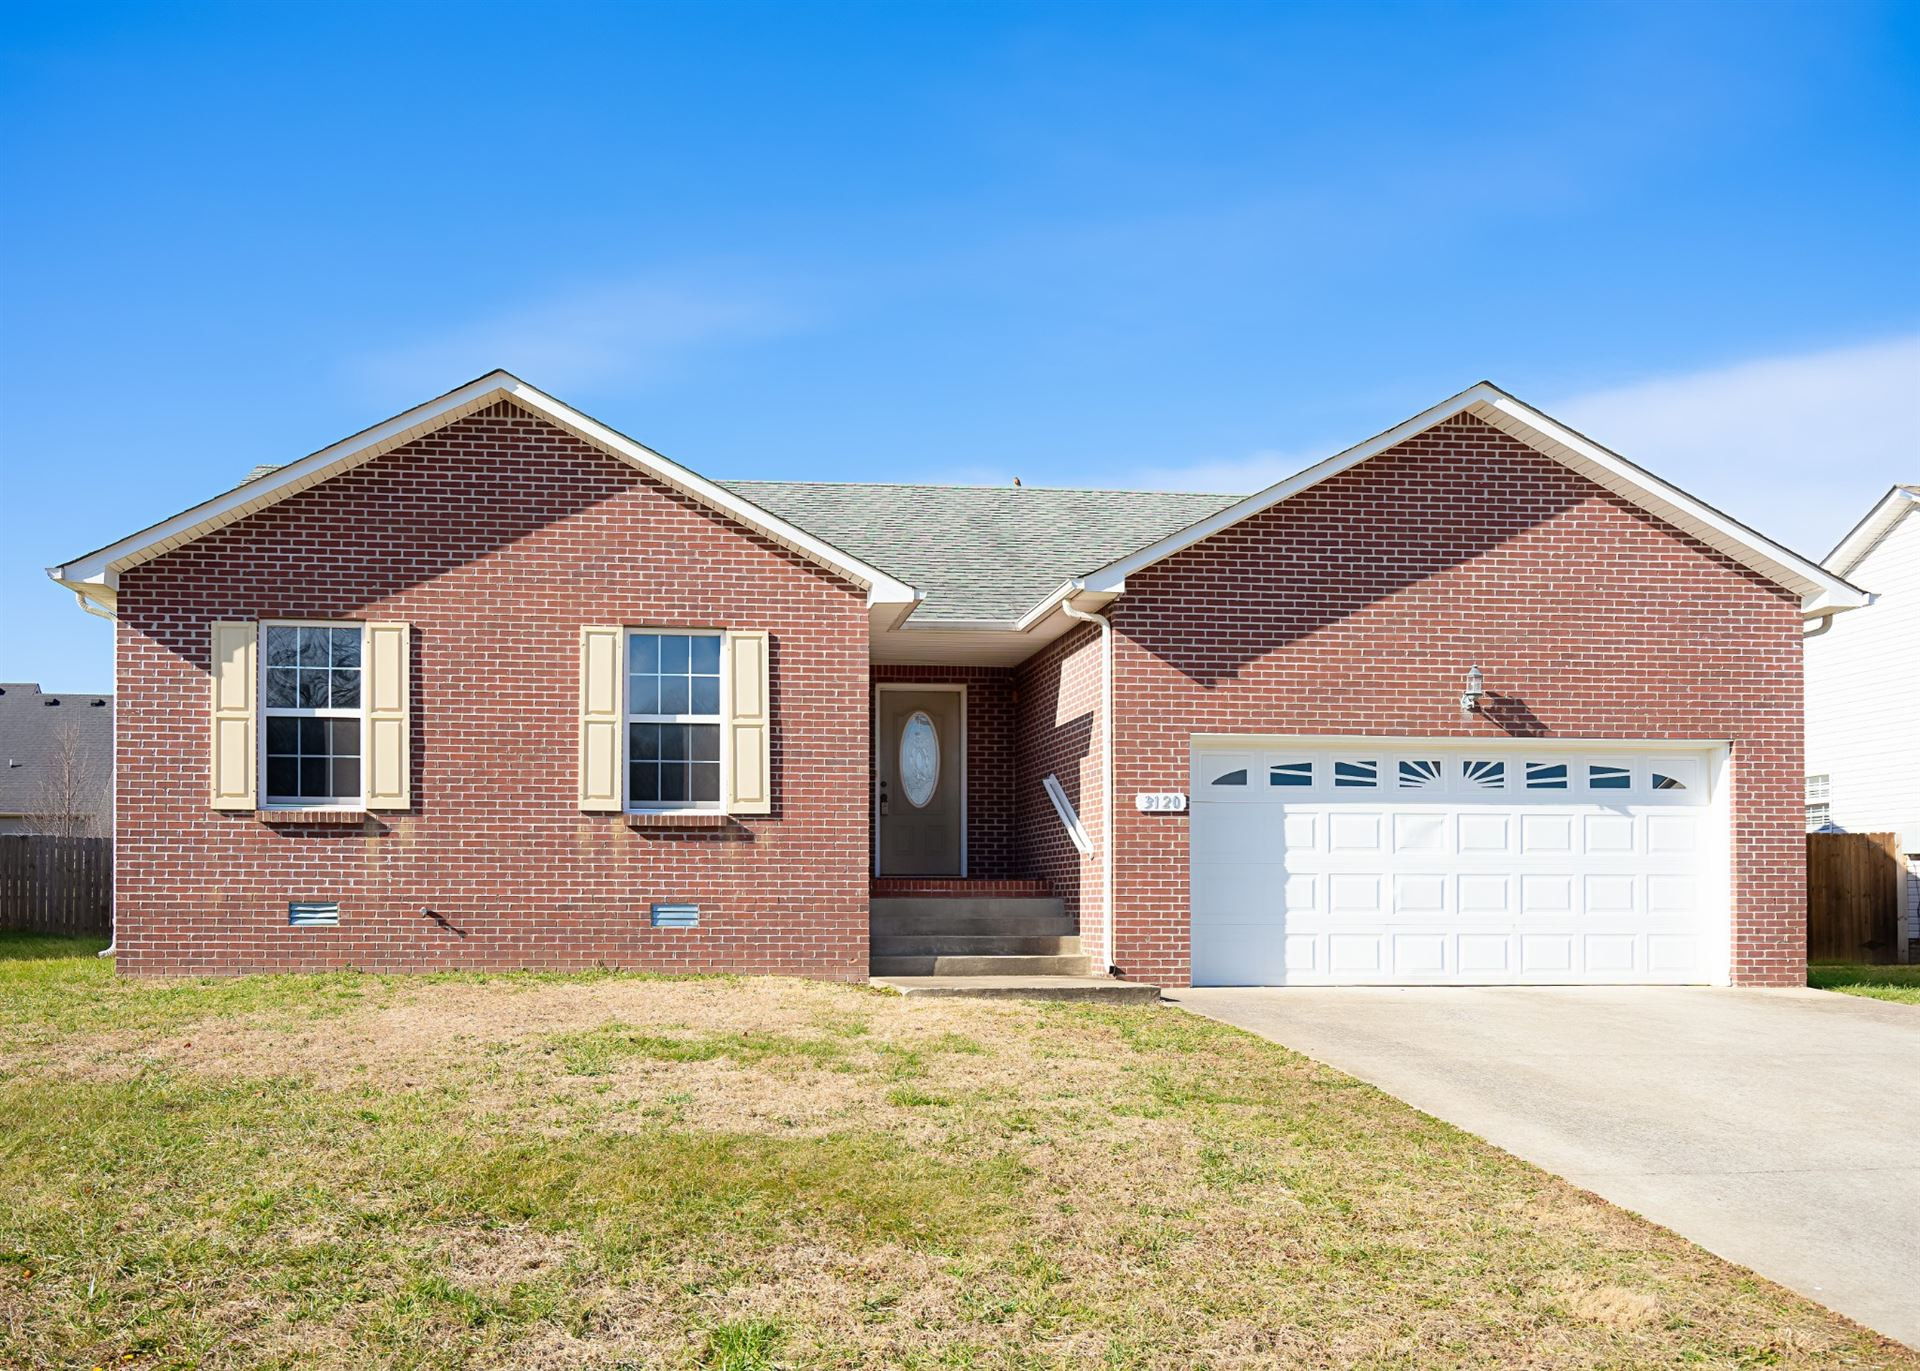 3120 Twelve Oaks Blvd, Clarksville, TN 37042 - MLS#: 2212899